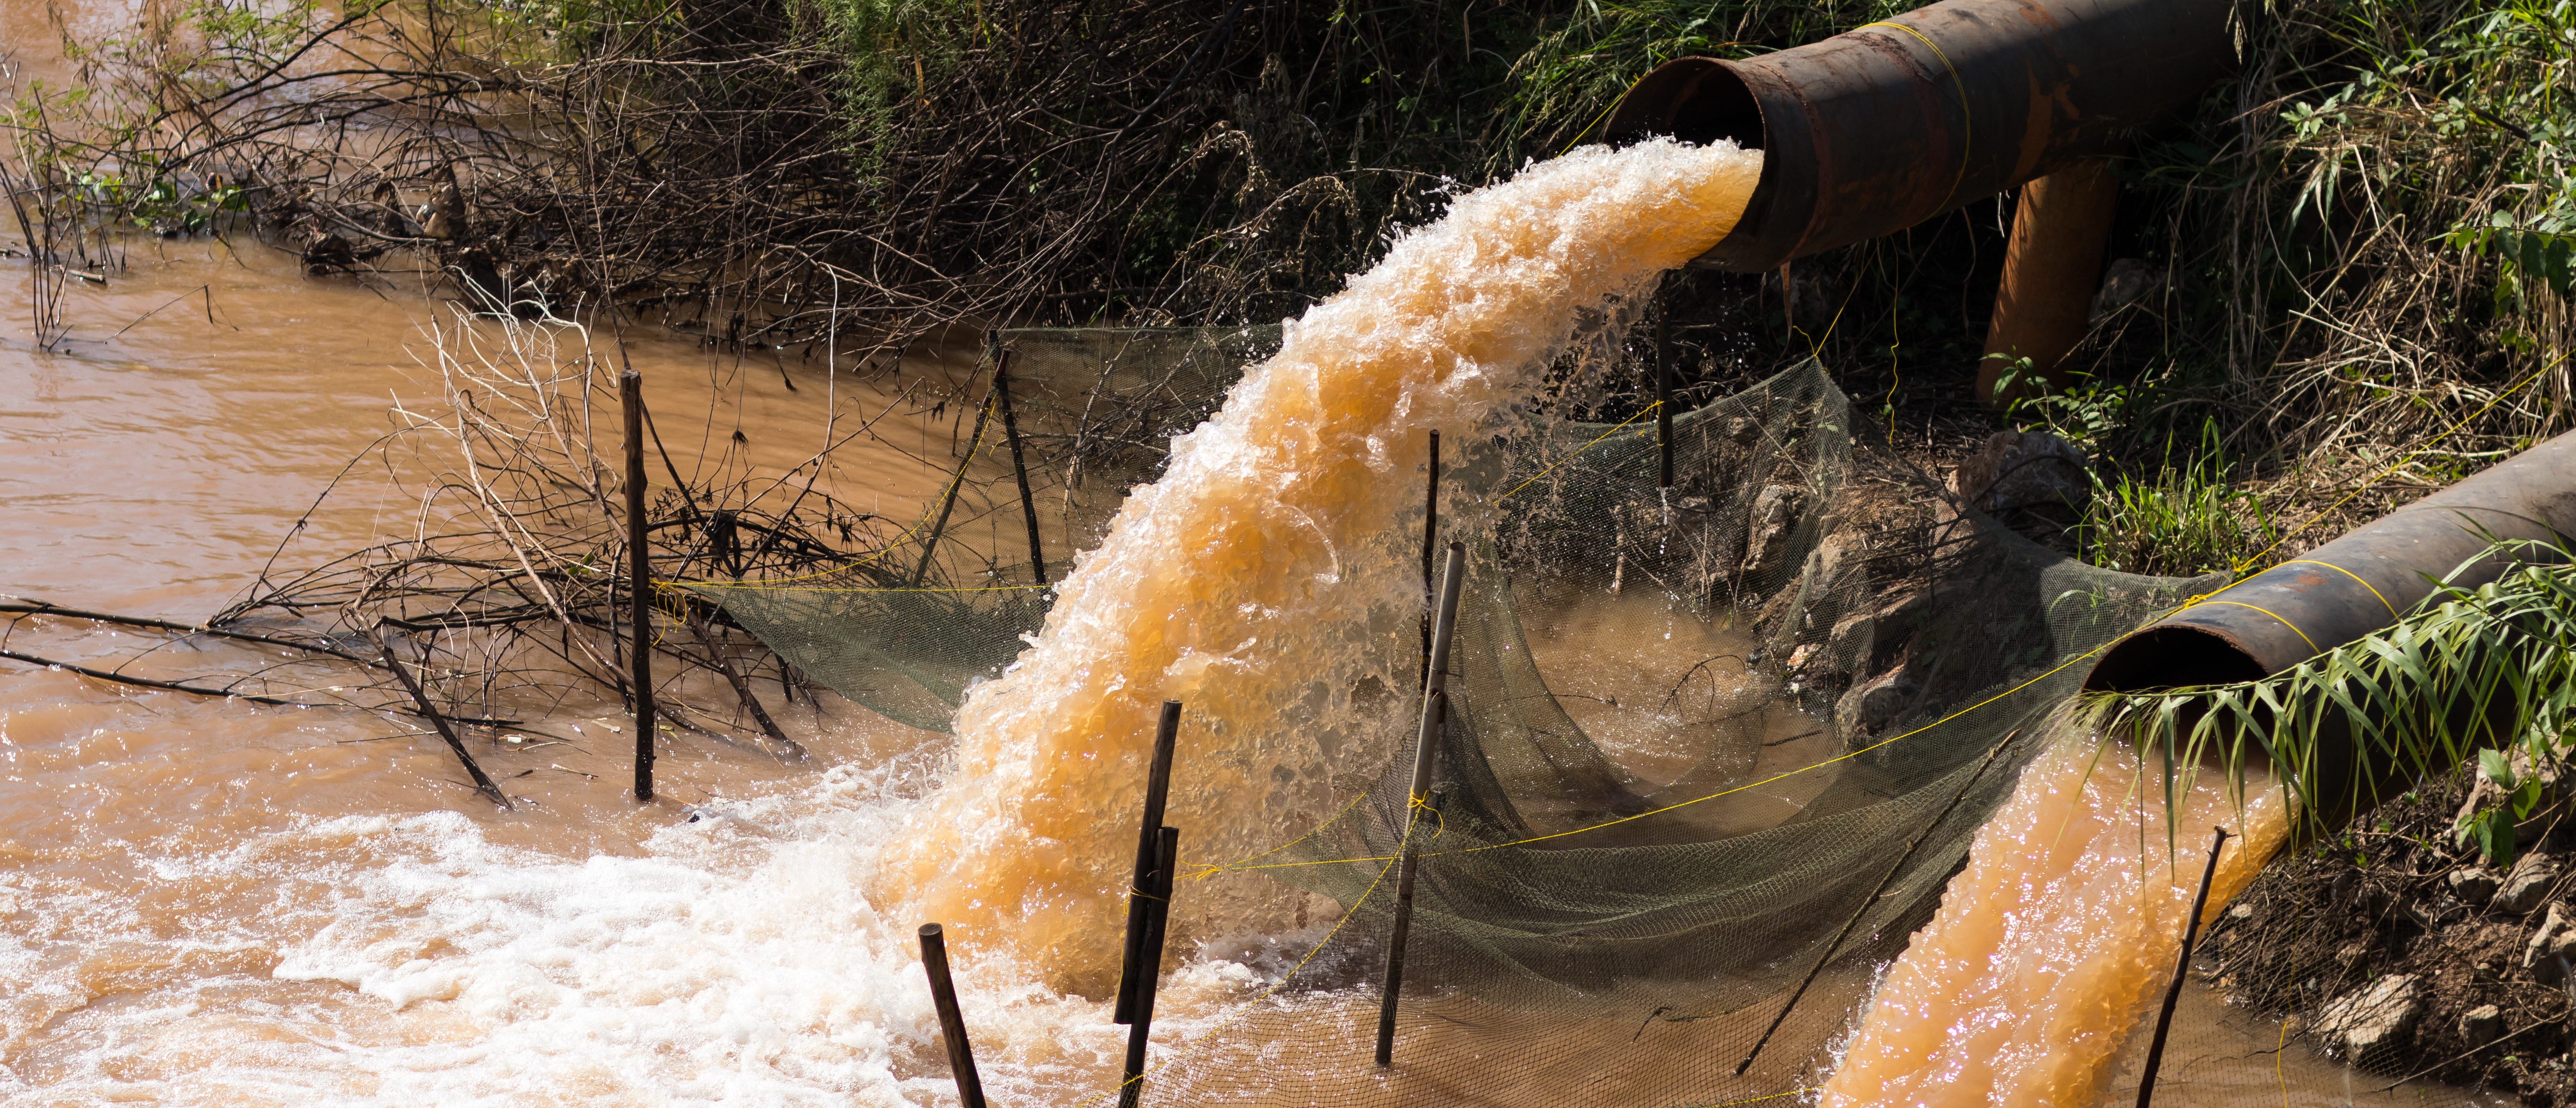 Close up of water gushing from the sewer to the coop in rural canals which flow stops recording. (Shutterstock)